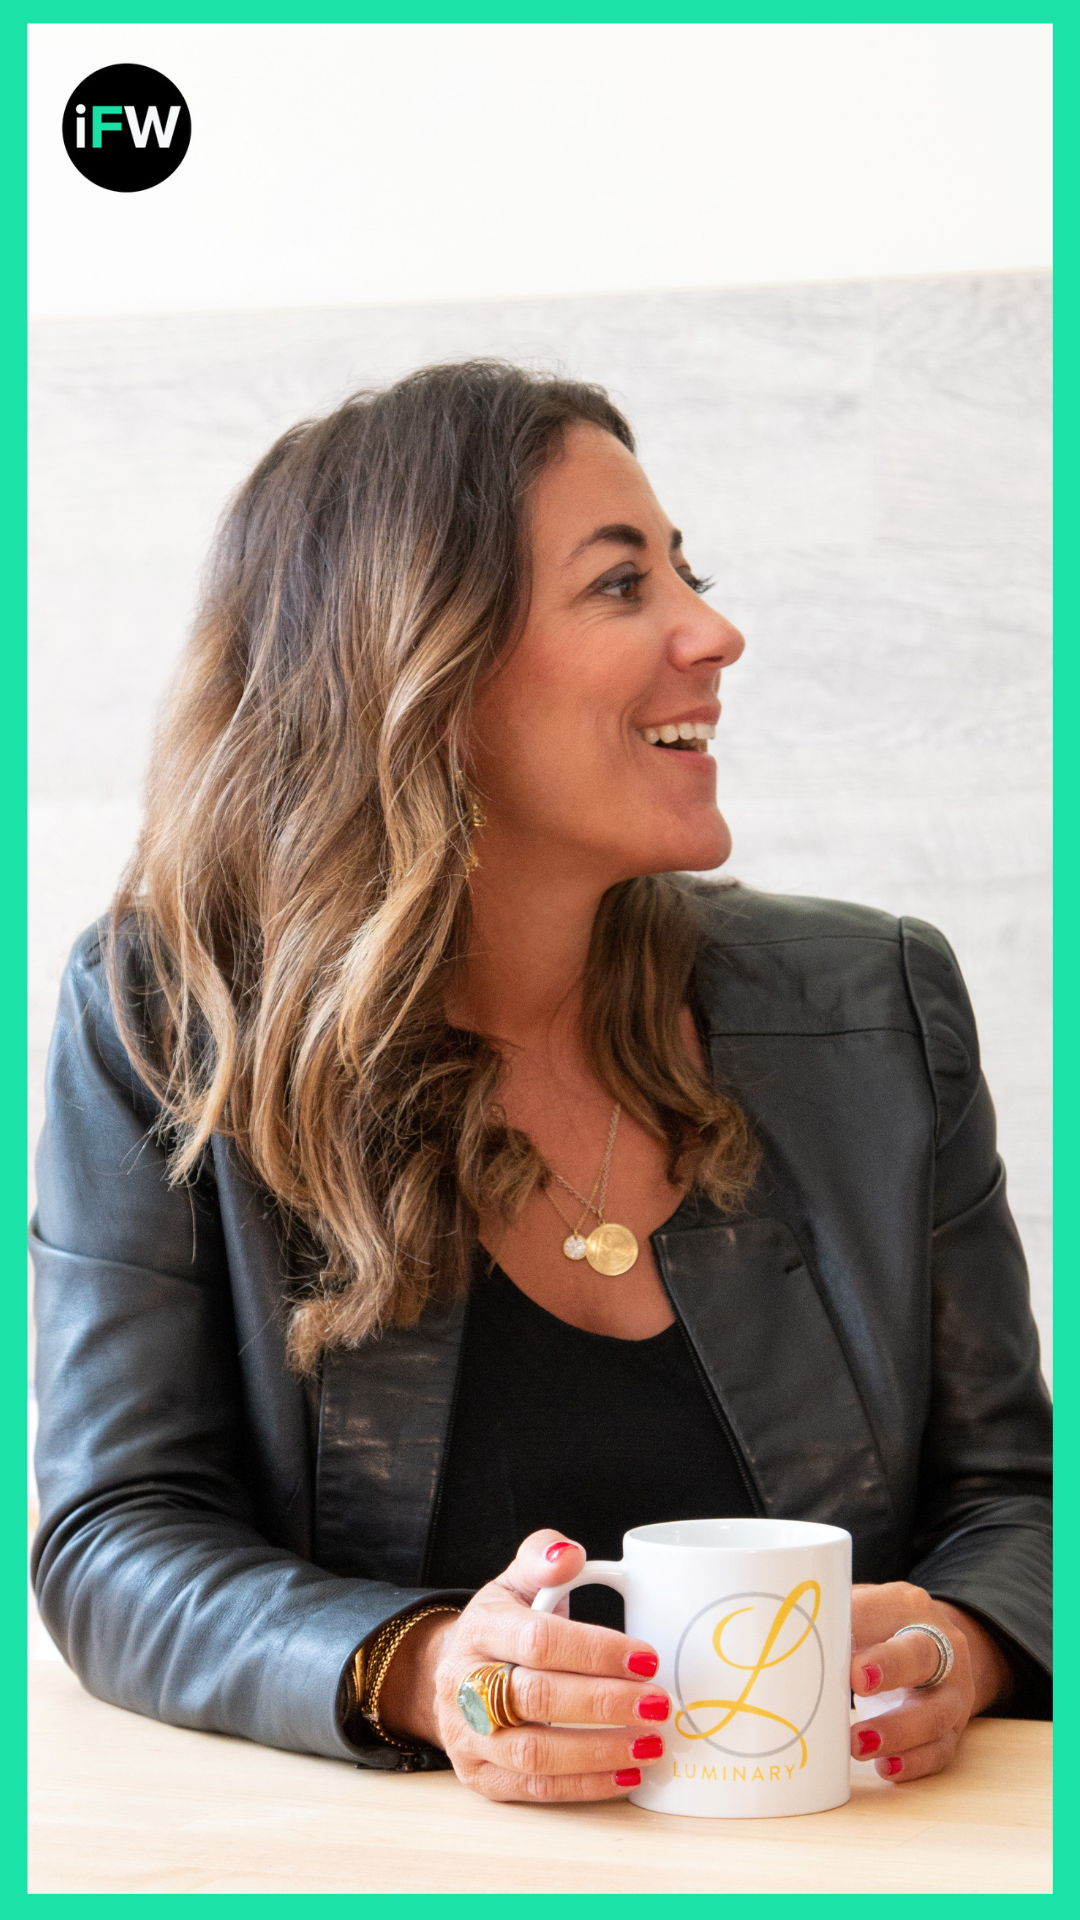 """I'm a salesperson my whole banking career. I have no fear! But for those who do, you have to be authentic and believe in what you are selling or funding. That is critical to getting people to open their wallets. Prove value."" - Cate Luzio, Founder of Luminary -"